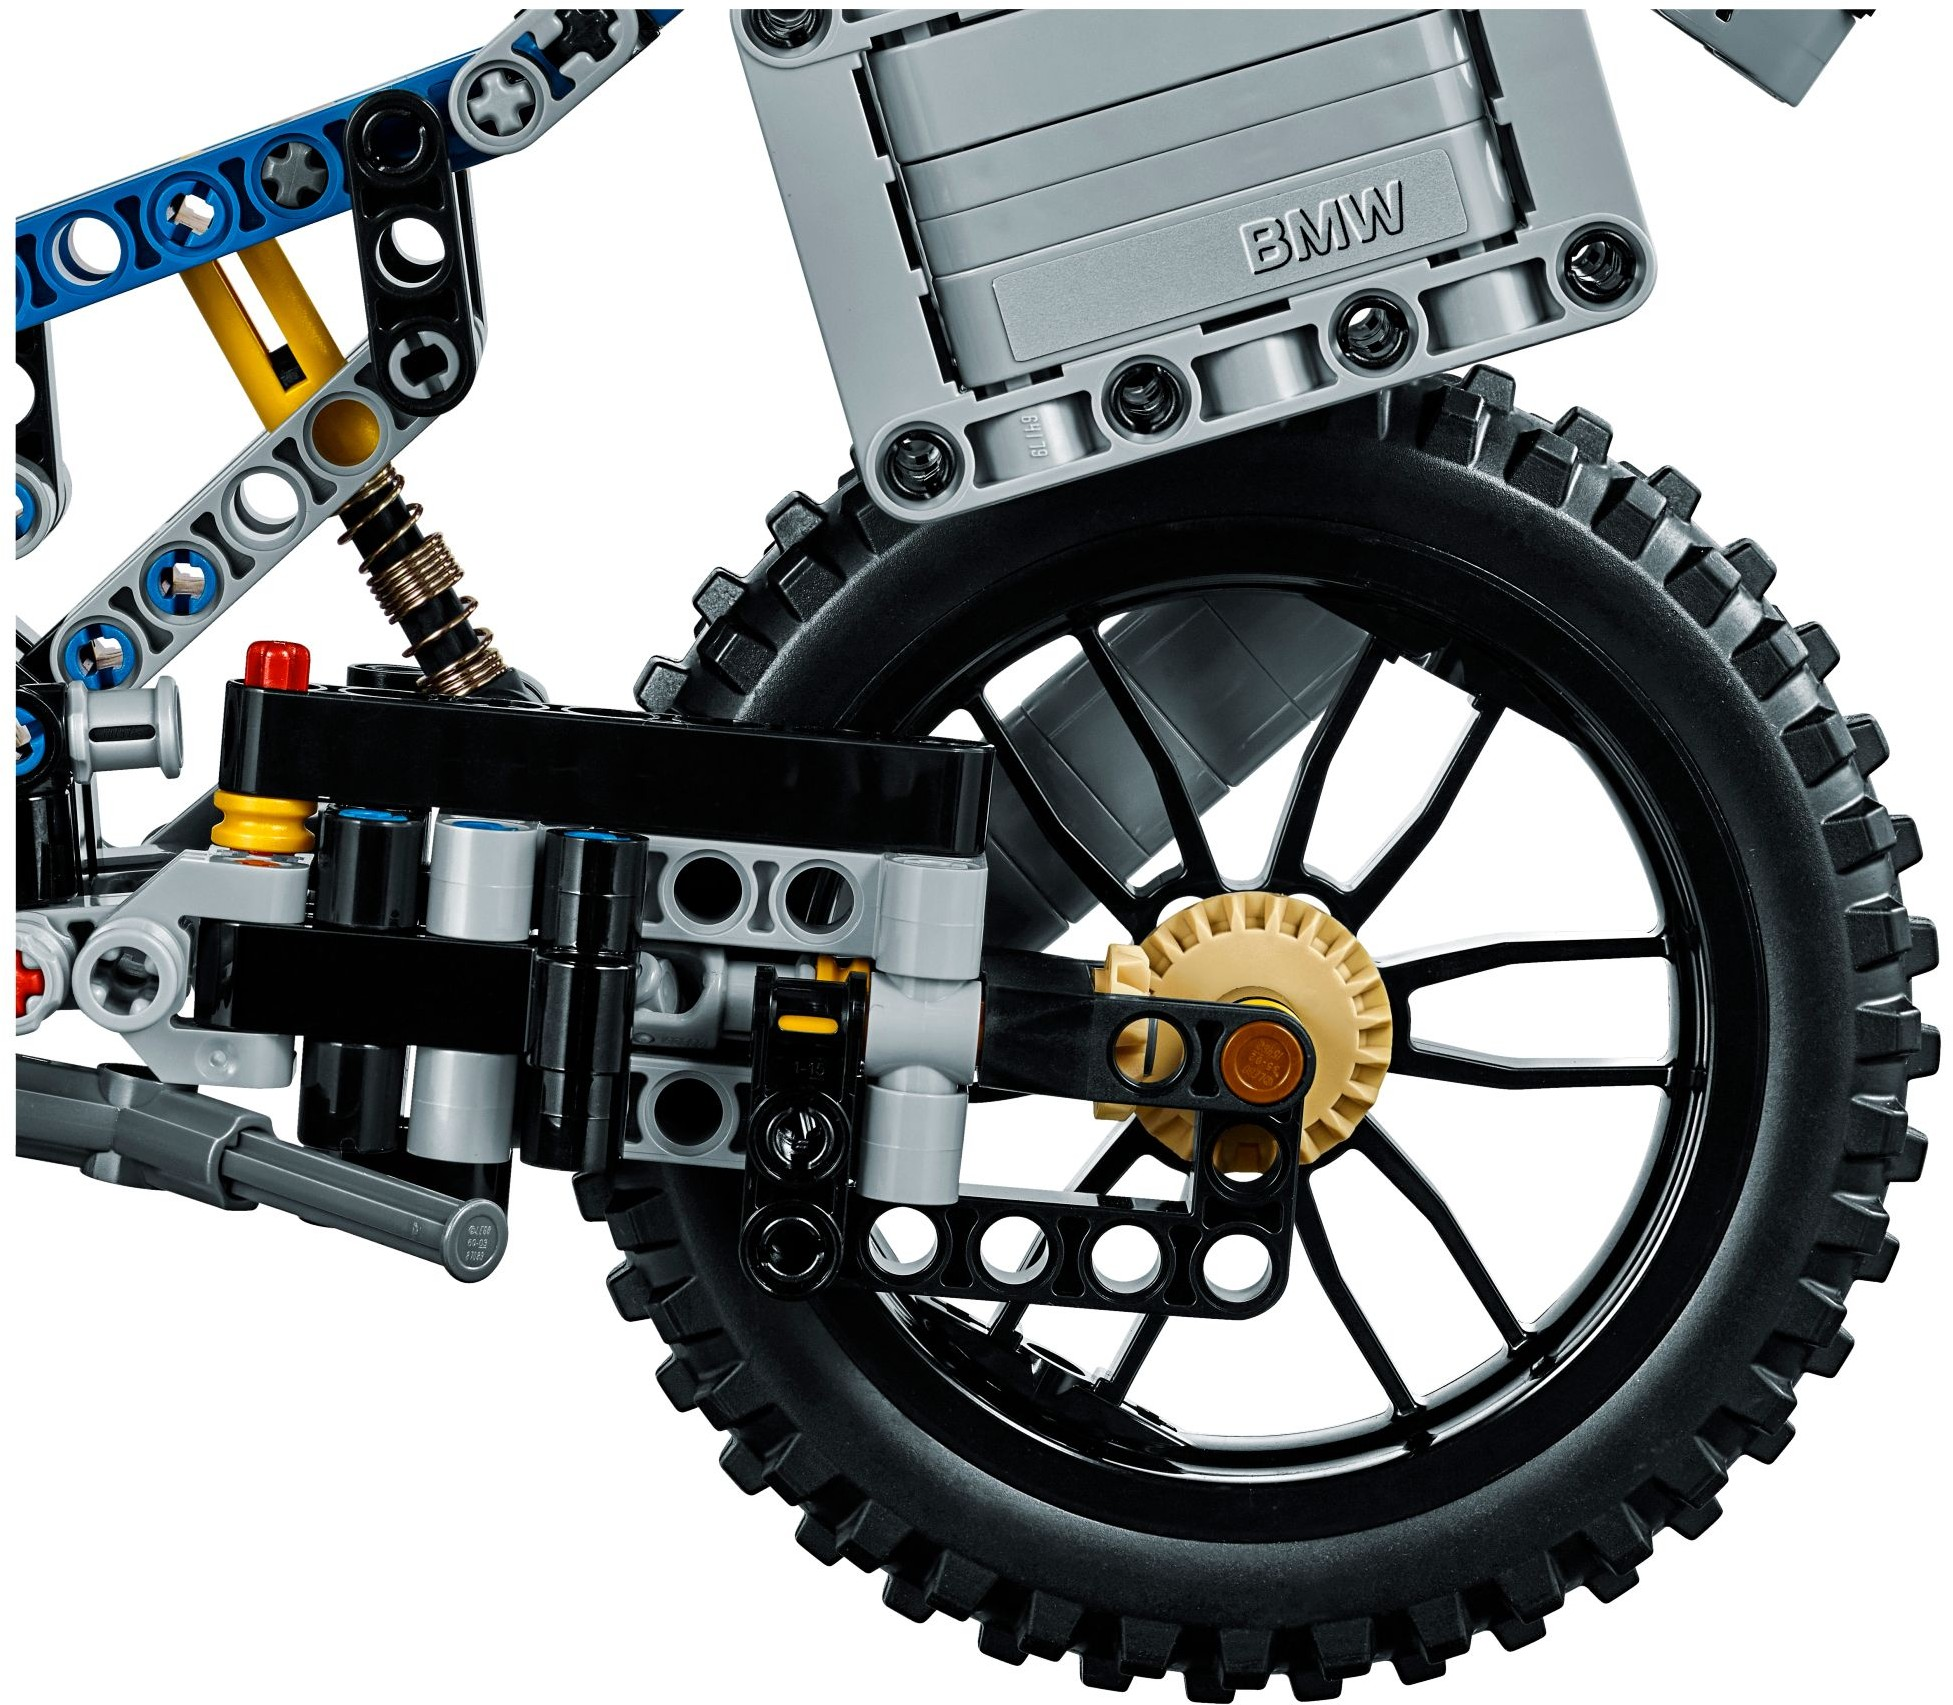 LEGO 42063 Technic BMW R 1200 GS